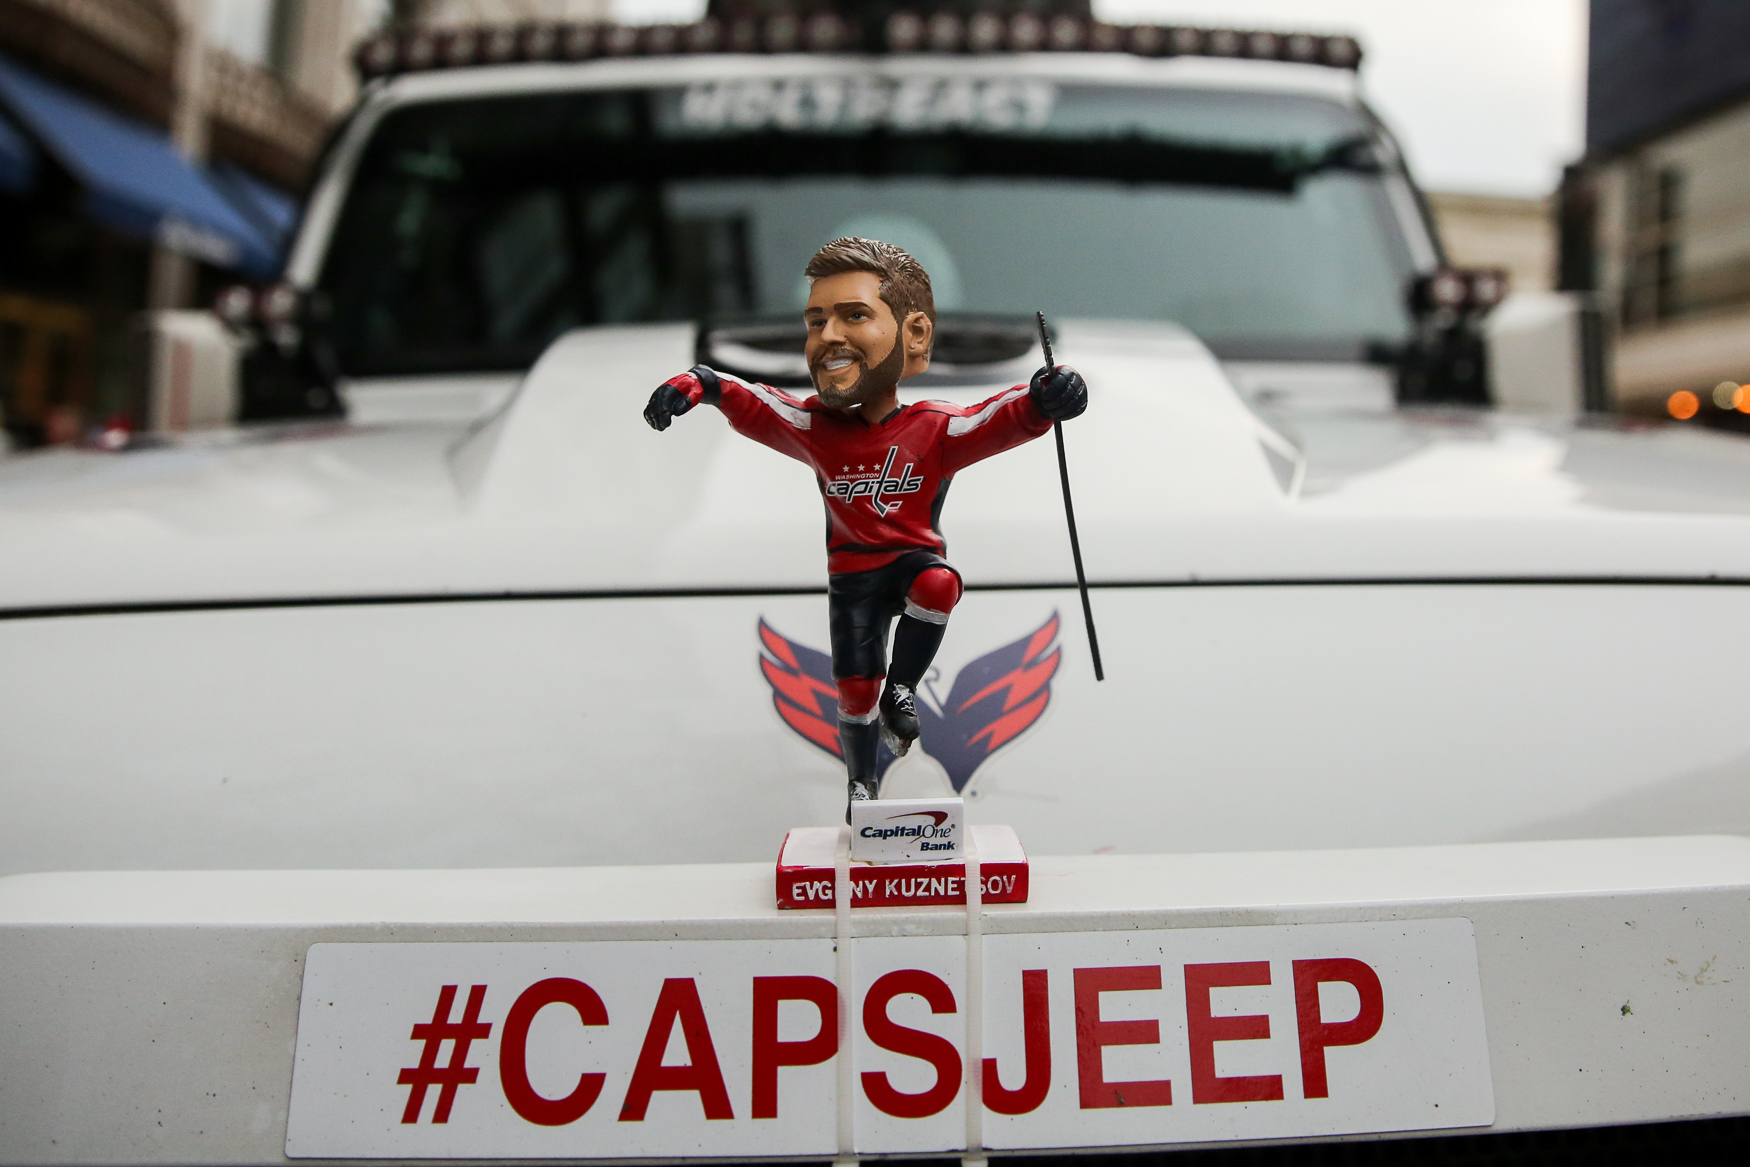 The Washington Capitals are facing off against the Carolina Hurricanes at home for the first game of the playoffs on April 11. Fans are hoping for back-to-back Stanley Cup victories, but they're in for long ride - NHL playoffs typically last until mid to late June. (Amanda Andrade-Rhoades/DC Refined)